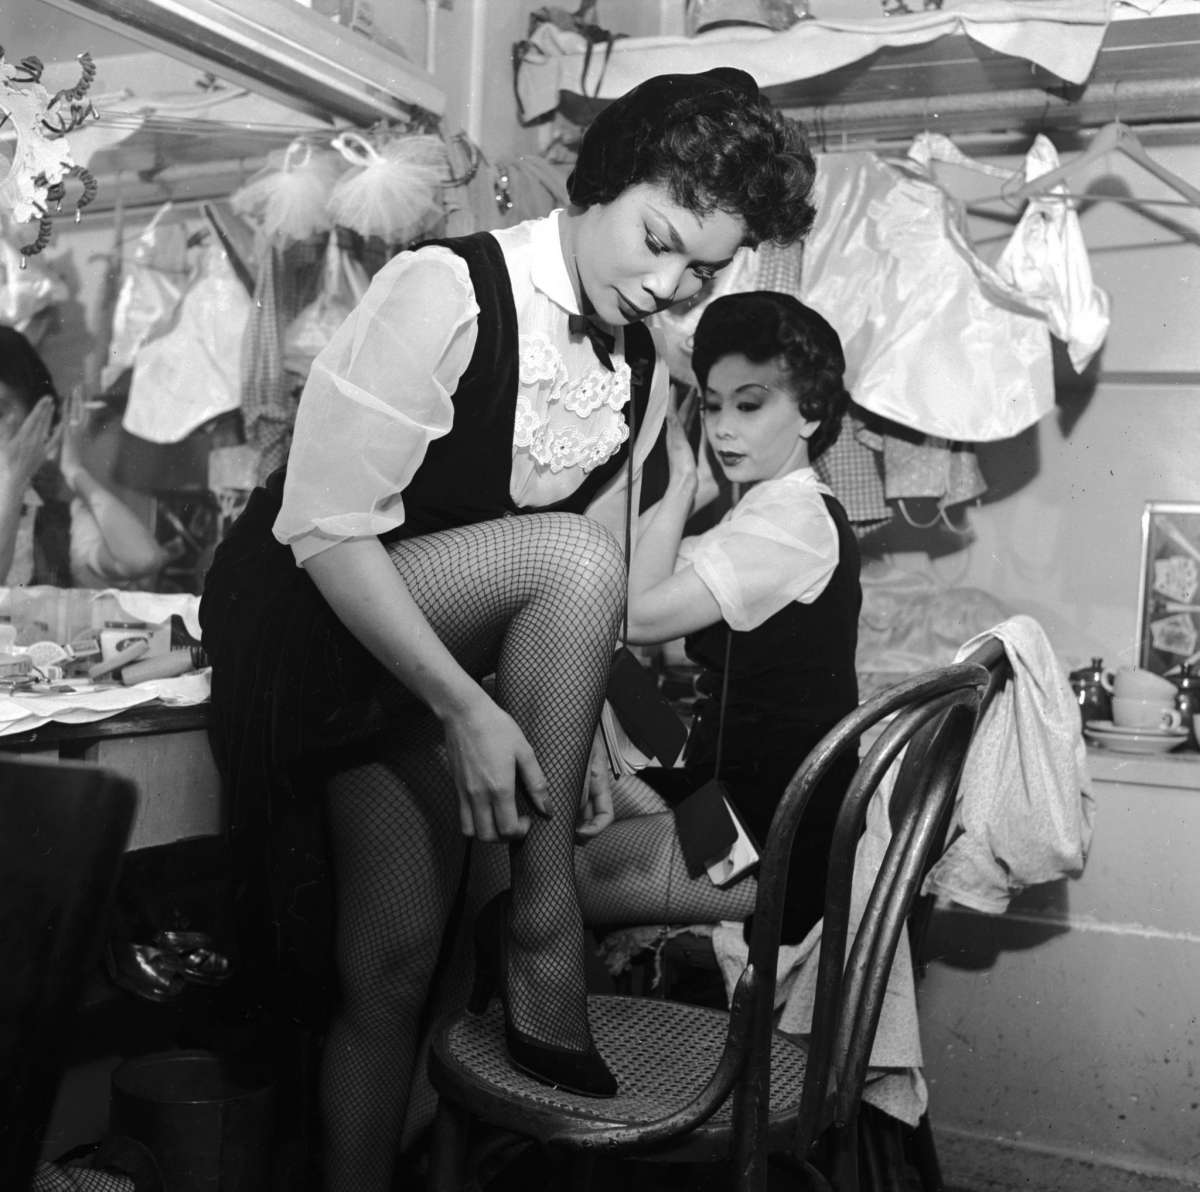 Two chorus girls prepare for their act in the dressing room of the Forbidden City nightclub circa 1955 in Chinatown, San Francisco.